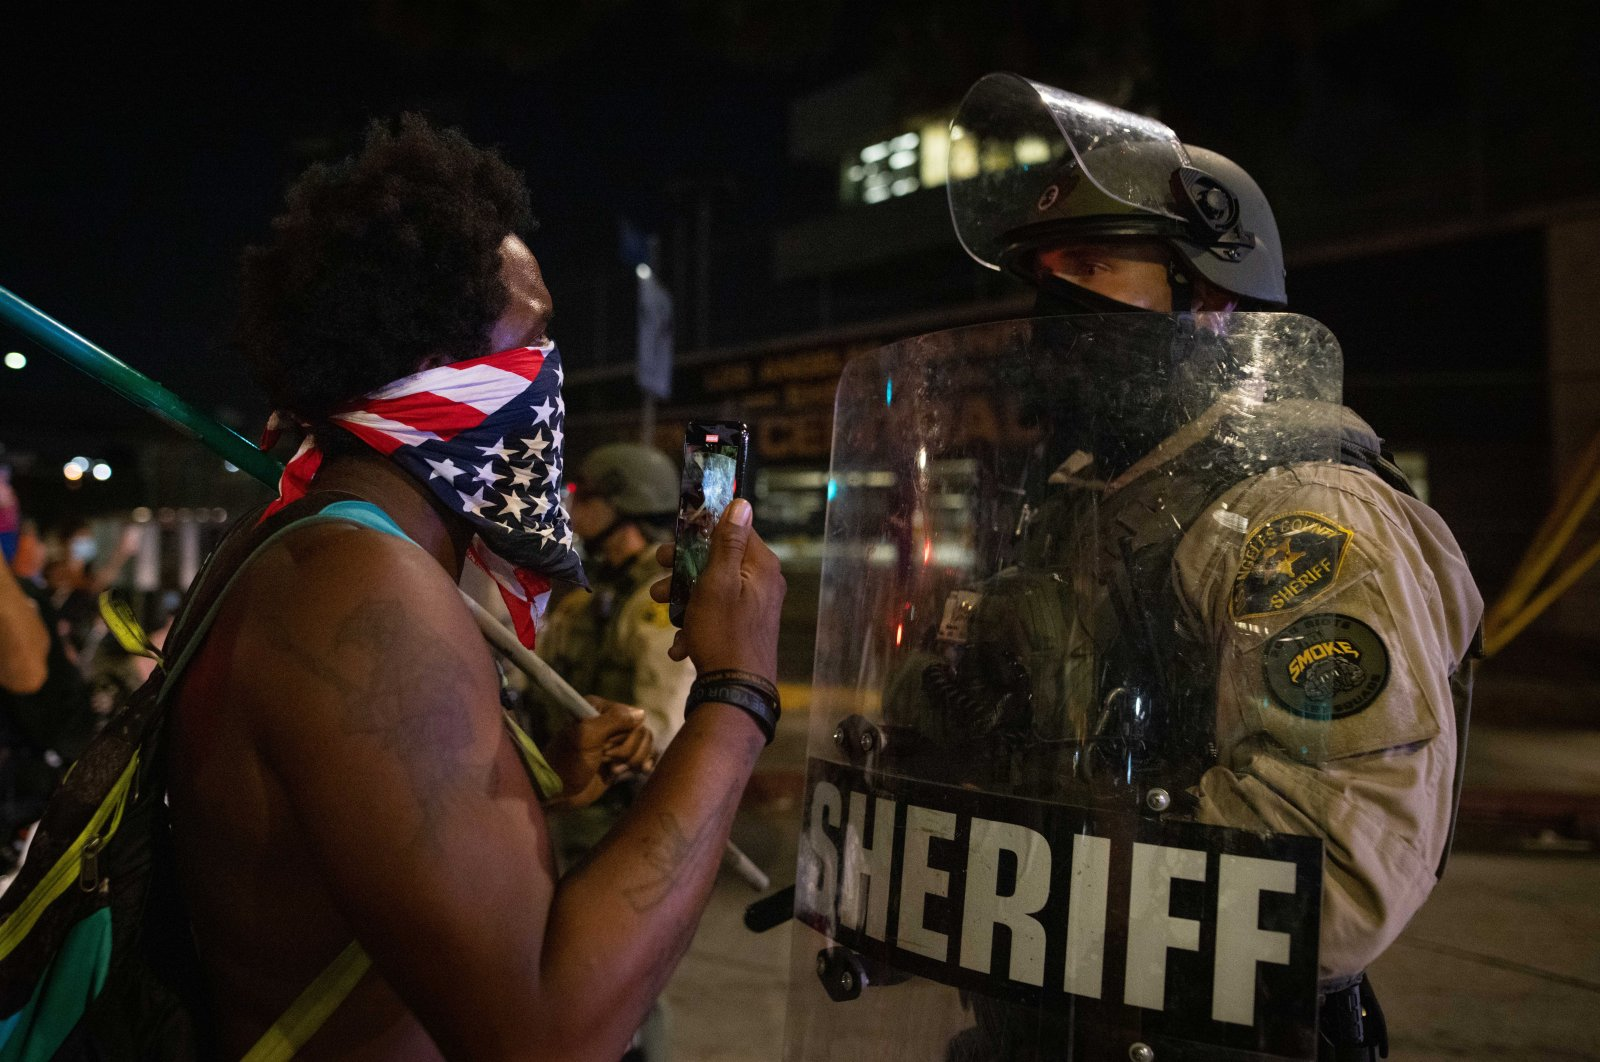 A Los Angeles Sherriff's deputy speaks with a Black Lives Matter protester during a protest in Los Angeles, California, U.S., Aug. 25, 2020. (EPA Photo)